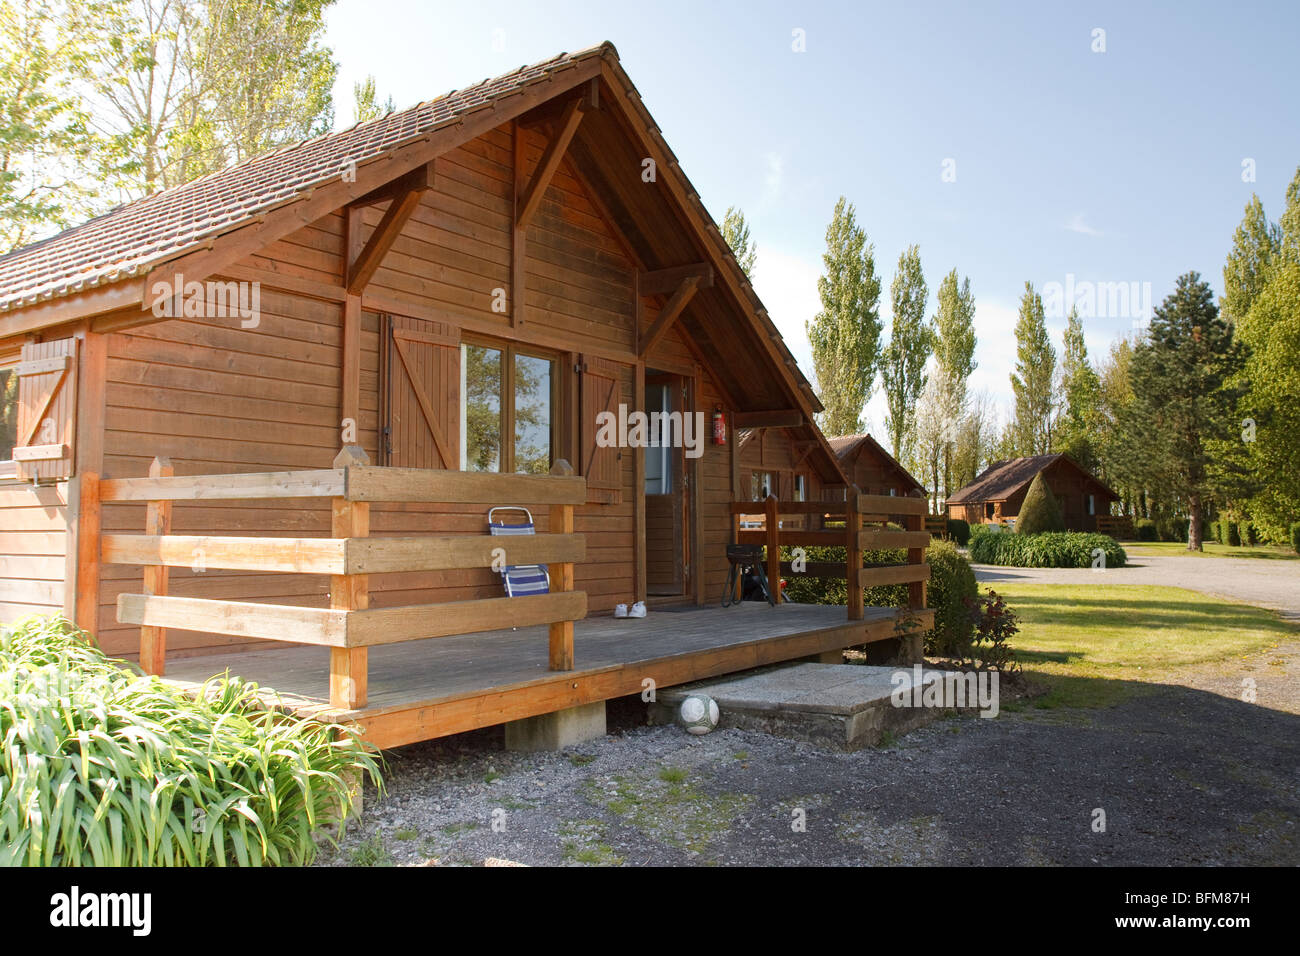 Wooden house - Stock Image